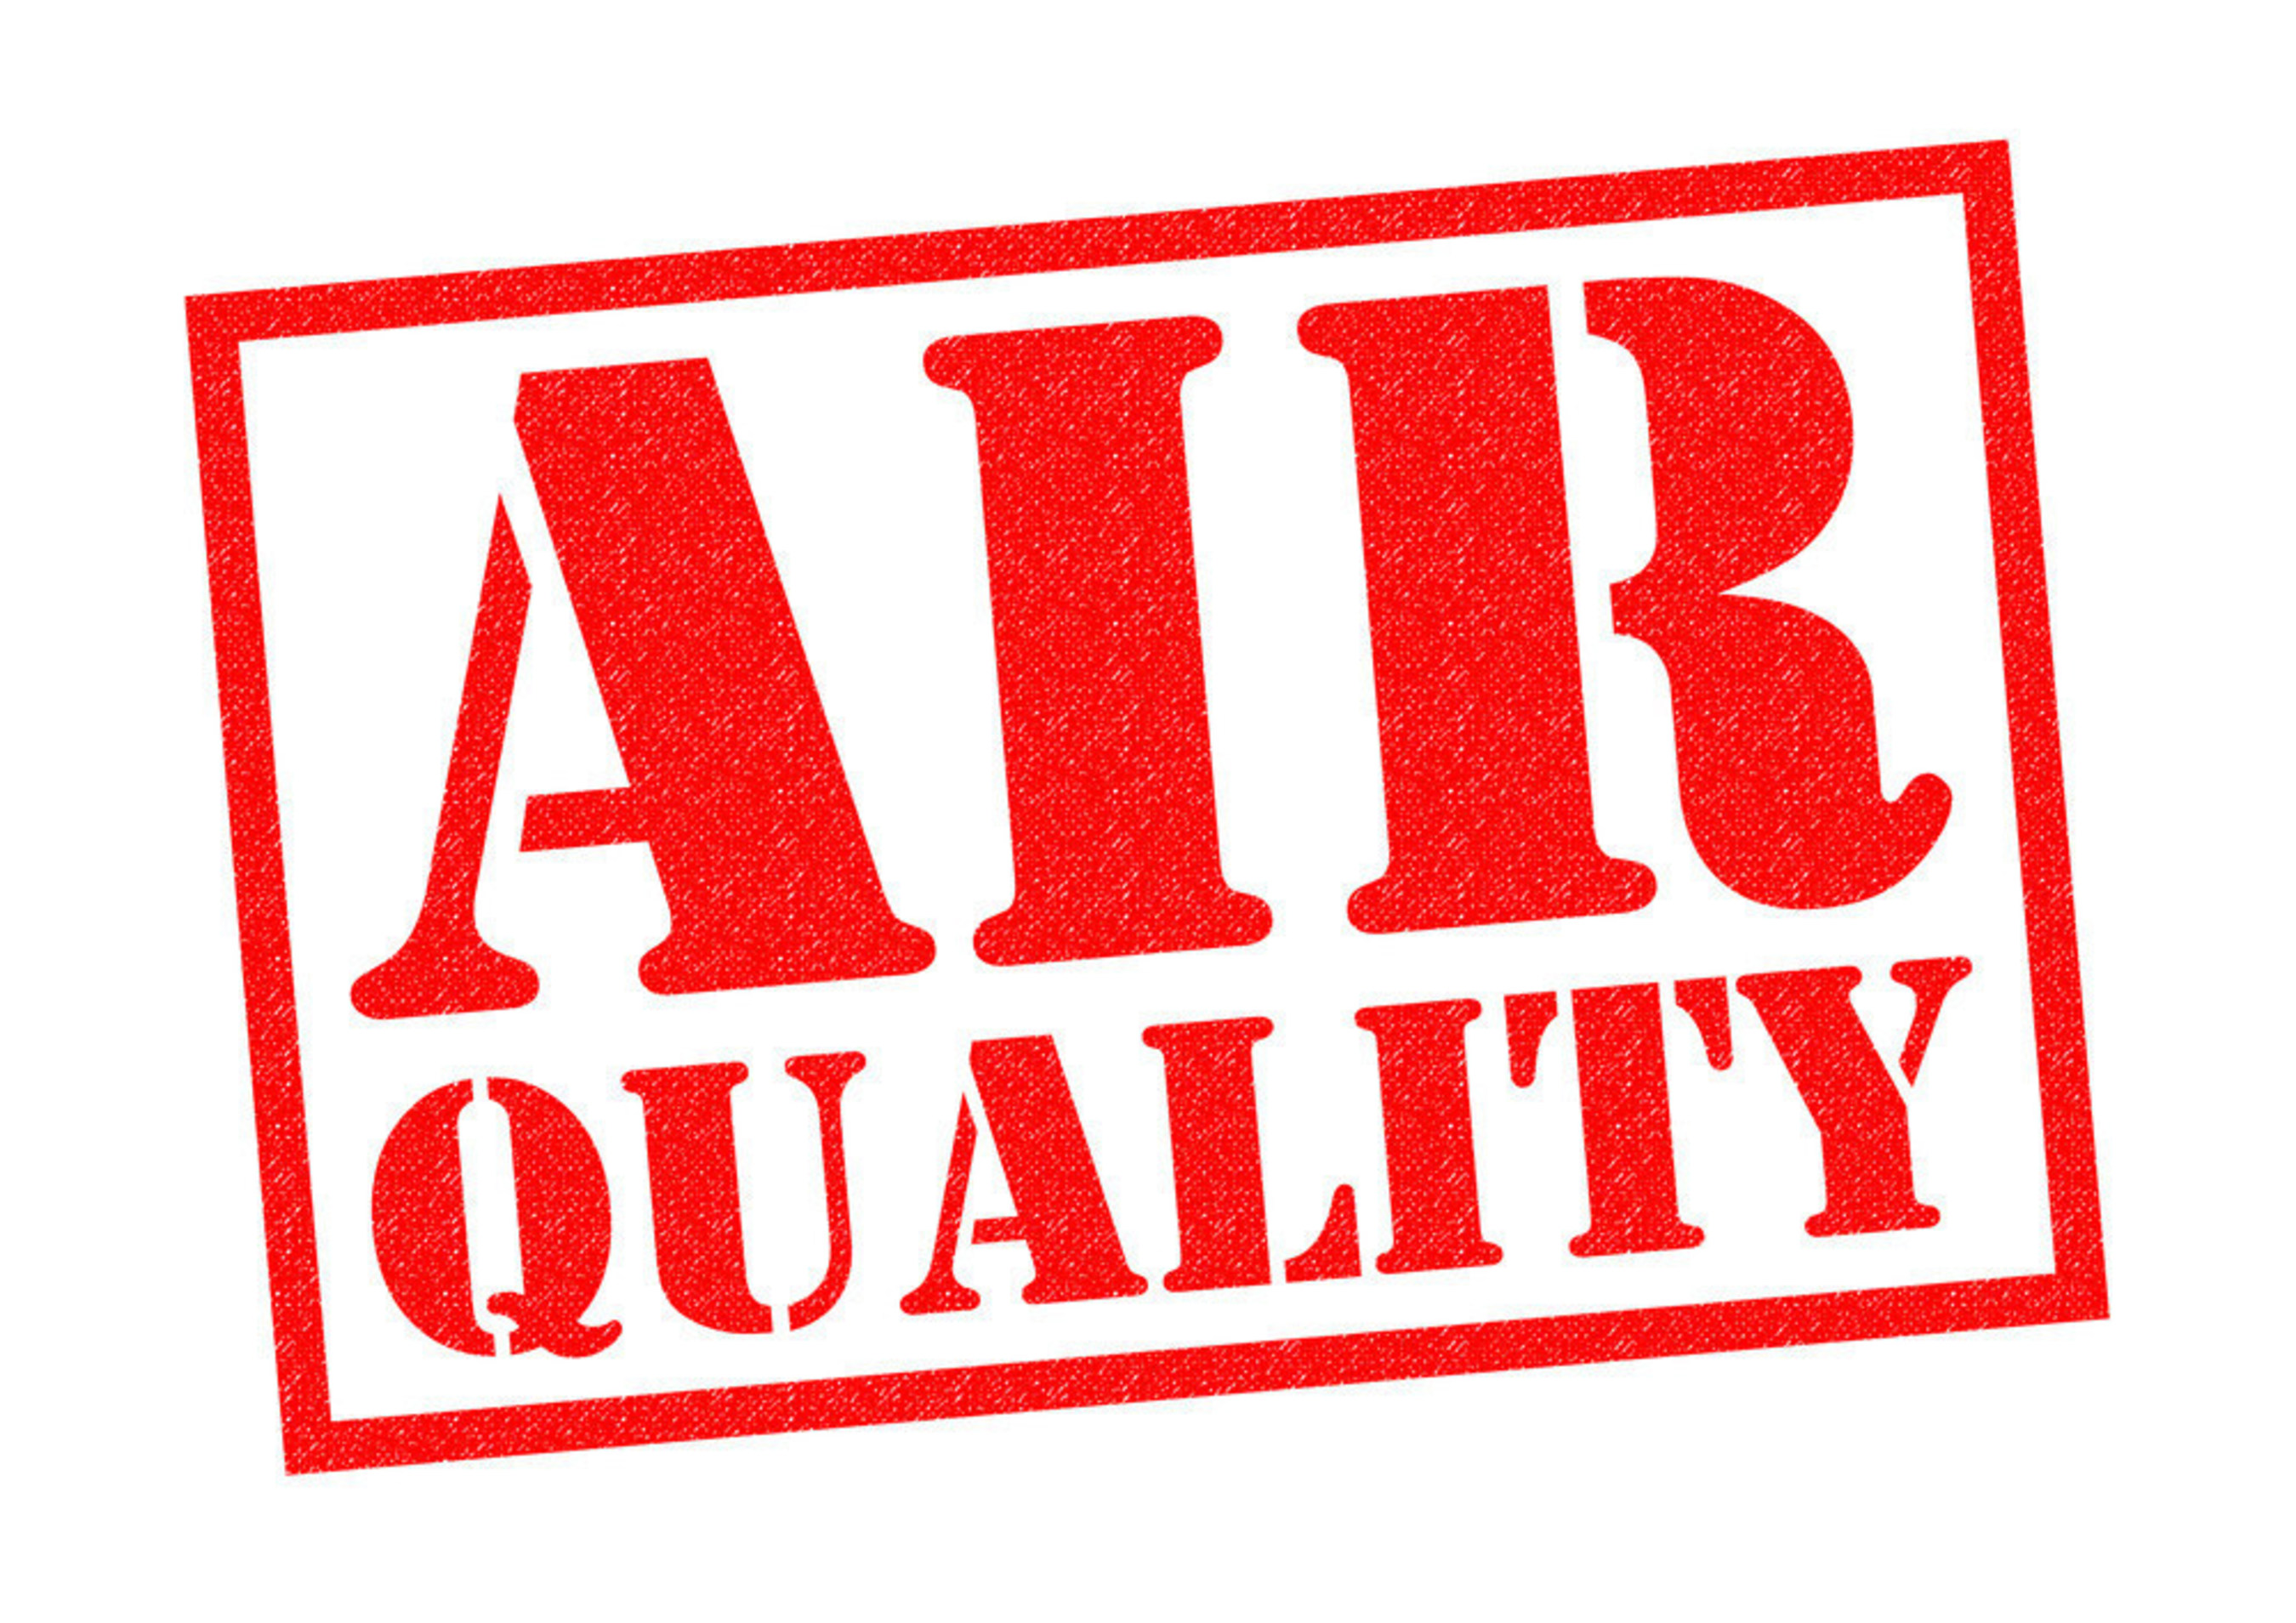 When the weather gets colder, many people spend more time indoors. Then it becomes more and more important that the air in your home is clean and healthy.